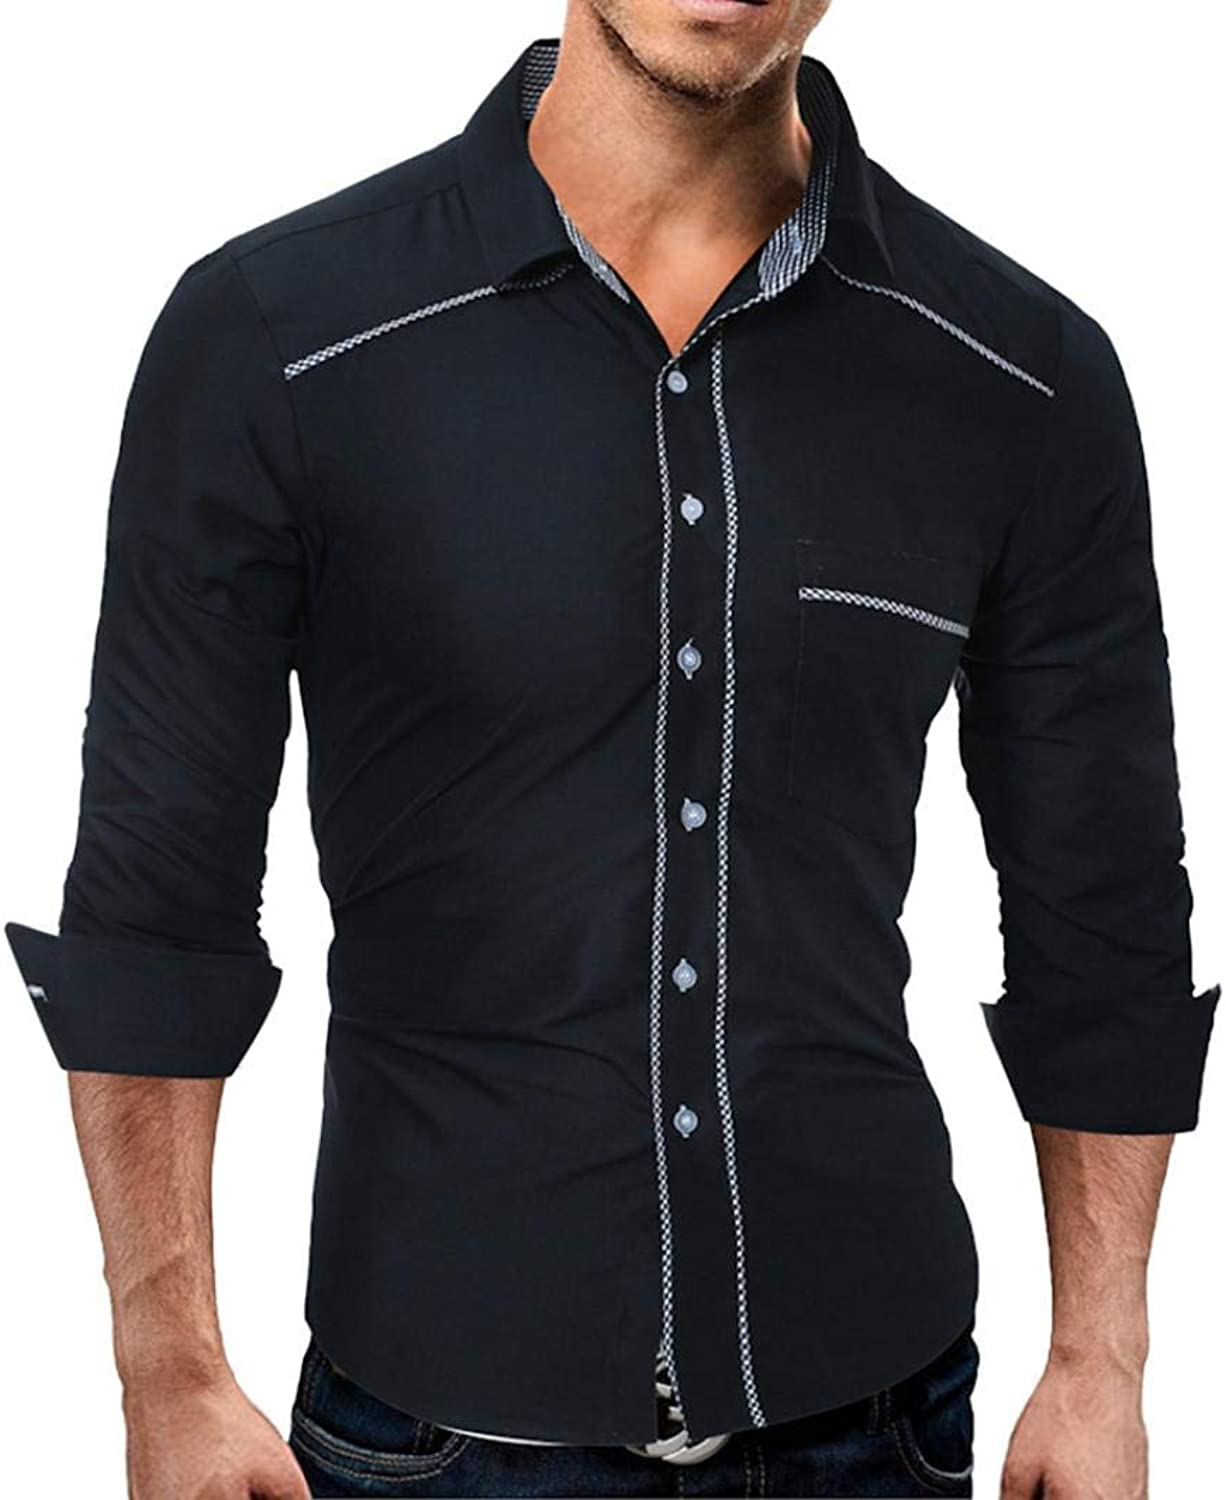 Men's Shirt Style Solid color Casual Long Sleeve Shirt Striped Slim Fit Fashion Handsome Mature Cosy Wild Tight Super Quality for Mens (color   black, Size   XXL)